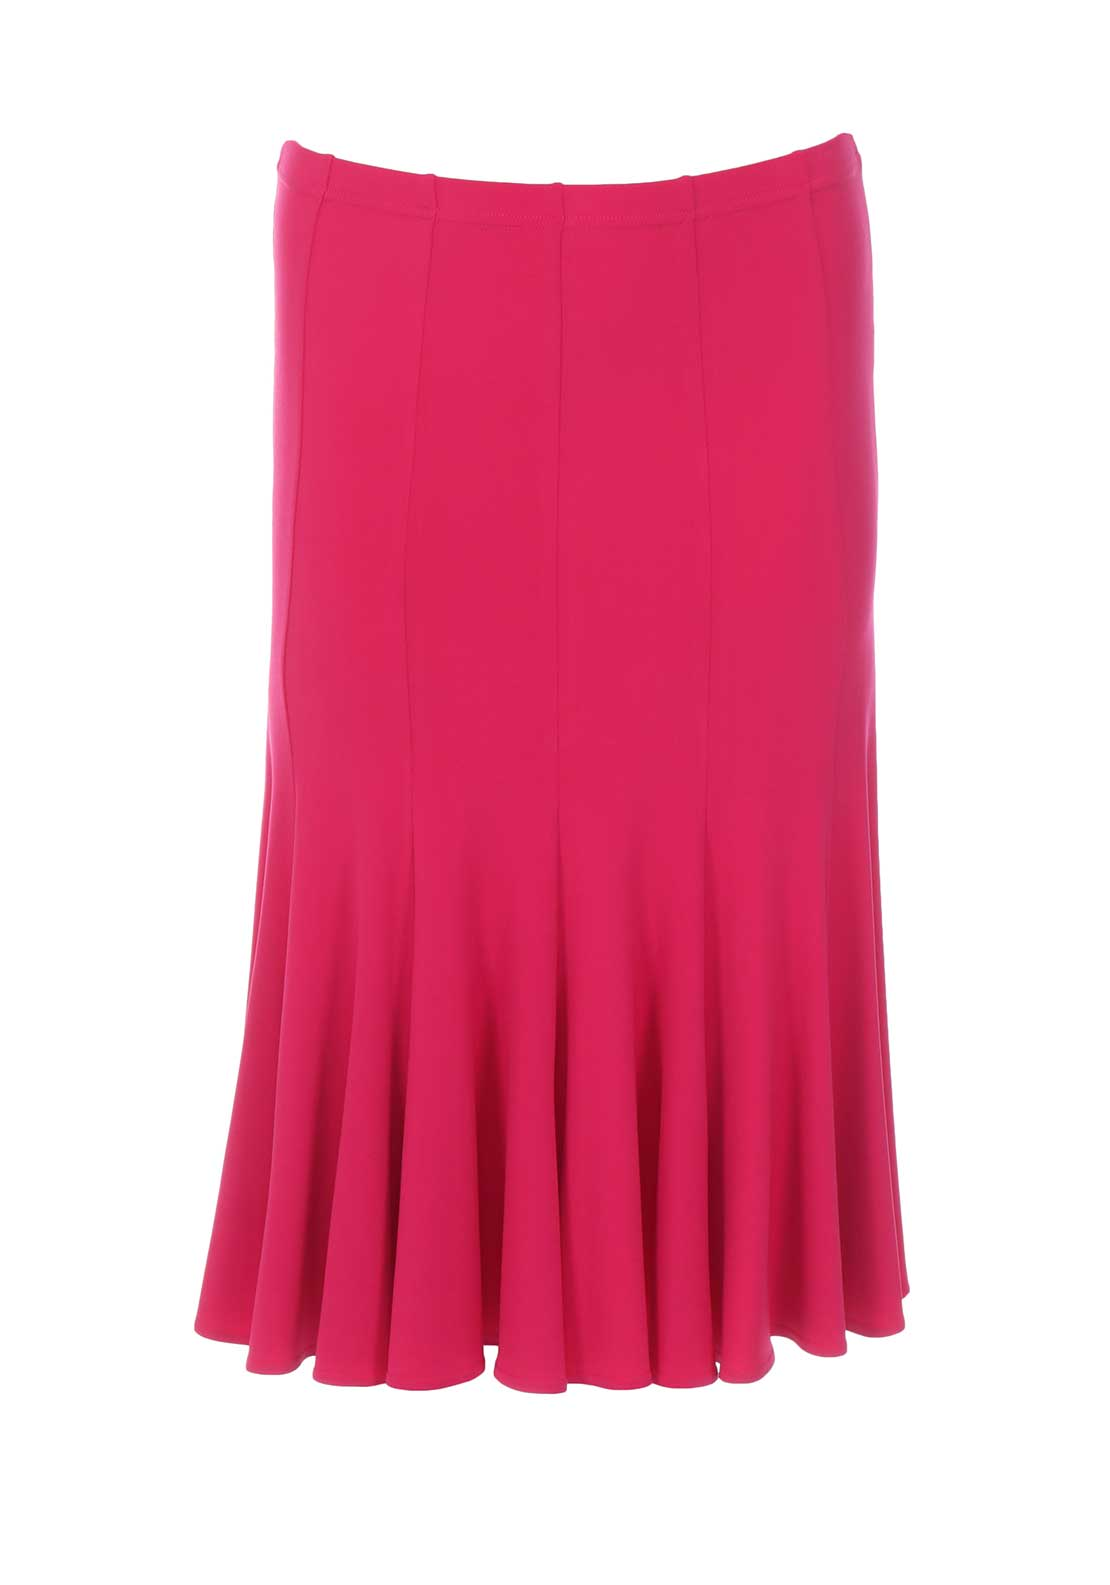 Georgede Flared Midi Skirt, Fuschia Pink